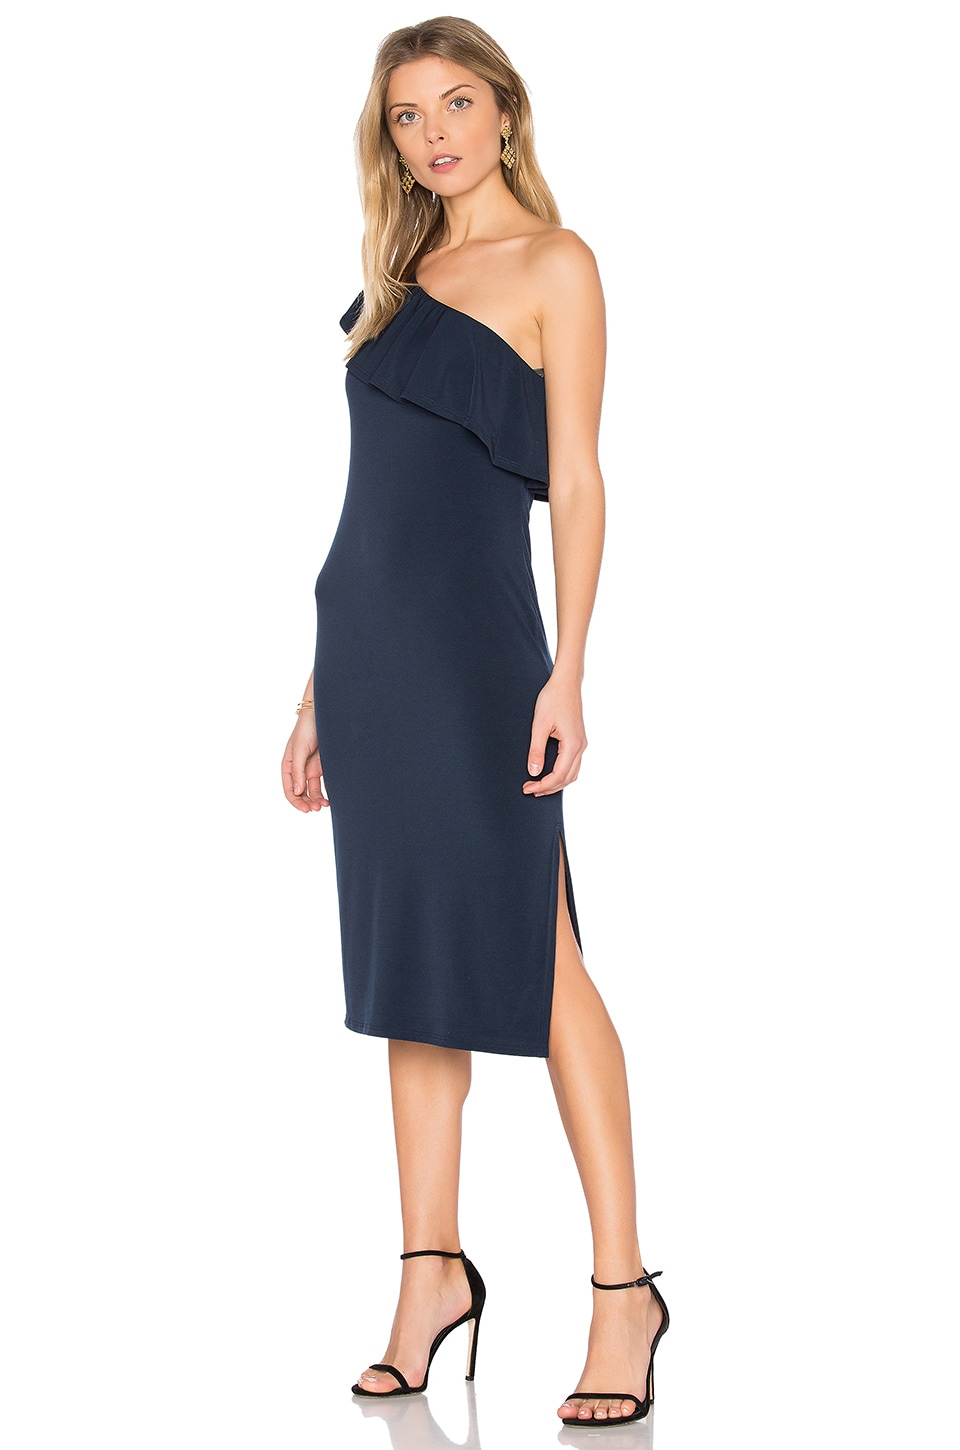 Velvet by Graham & Spencer Esperanza One Shoulder Dress in Ink